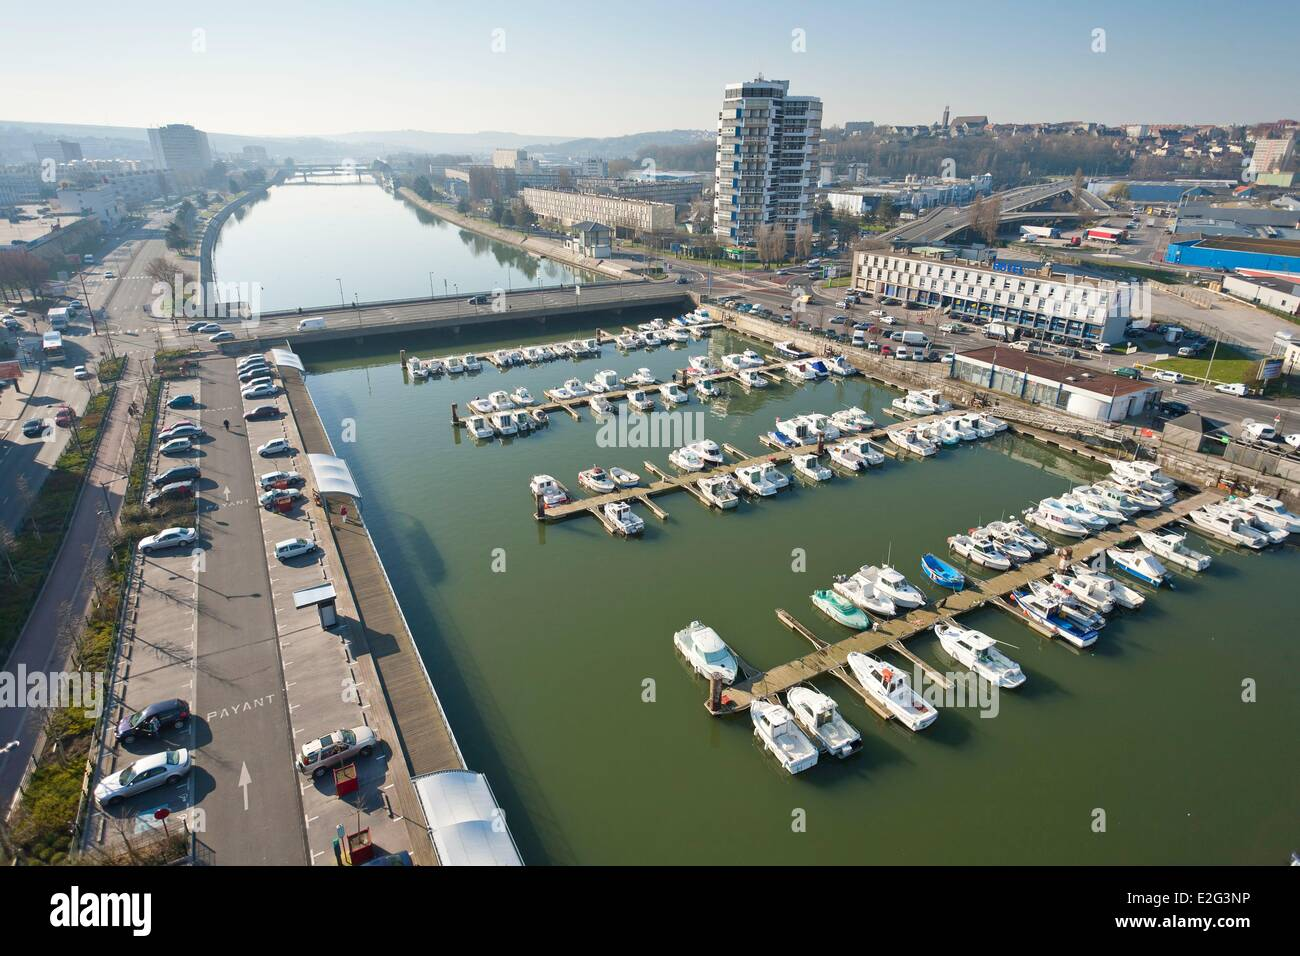 france pas de calais boulogne sur mer the liane river and f stock photo 70424978 alamy. Black Bedroom Furniture Sets. Home Design Ideas